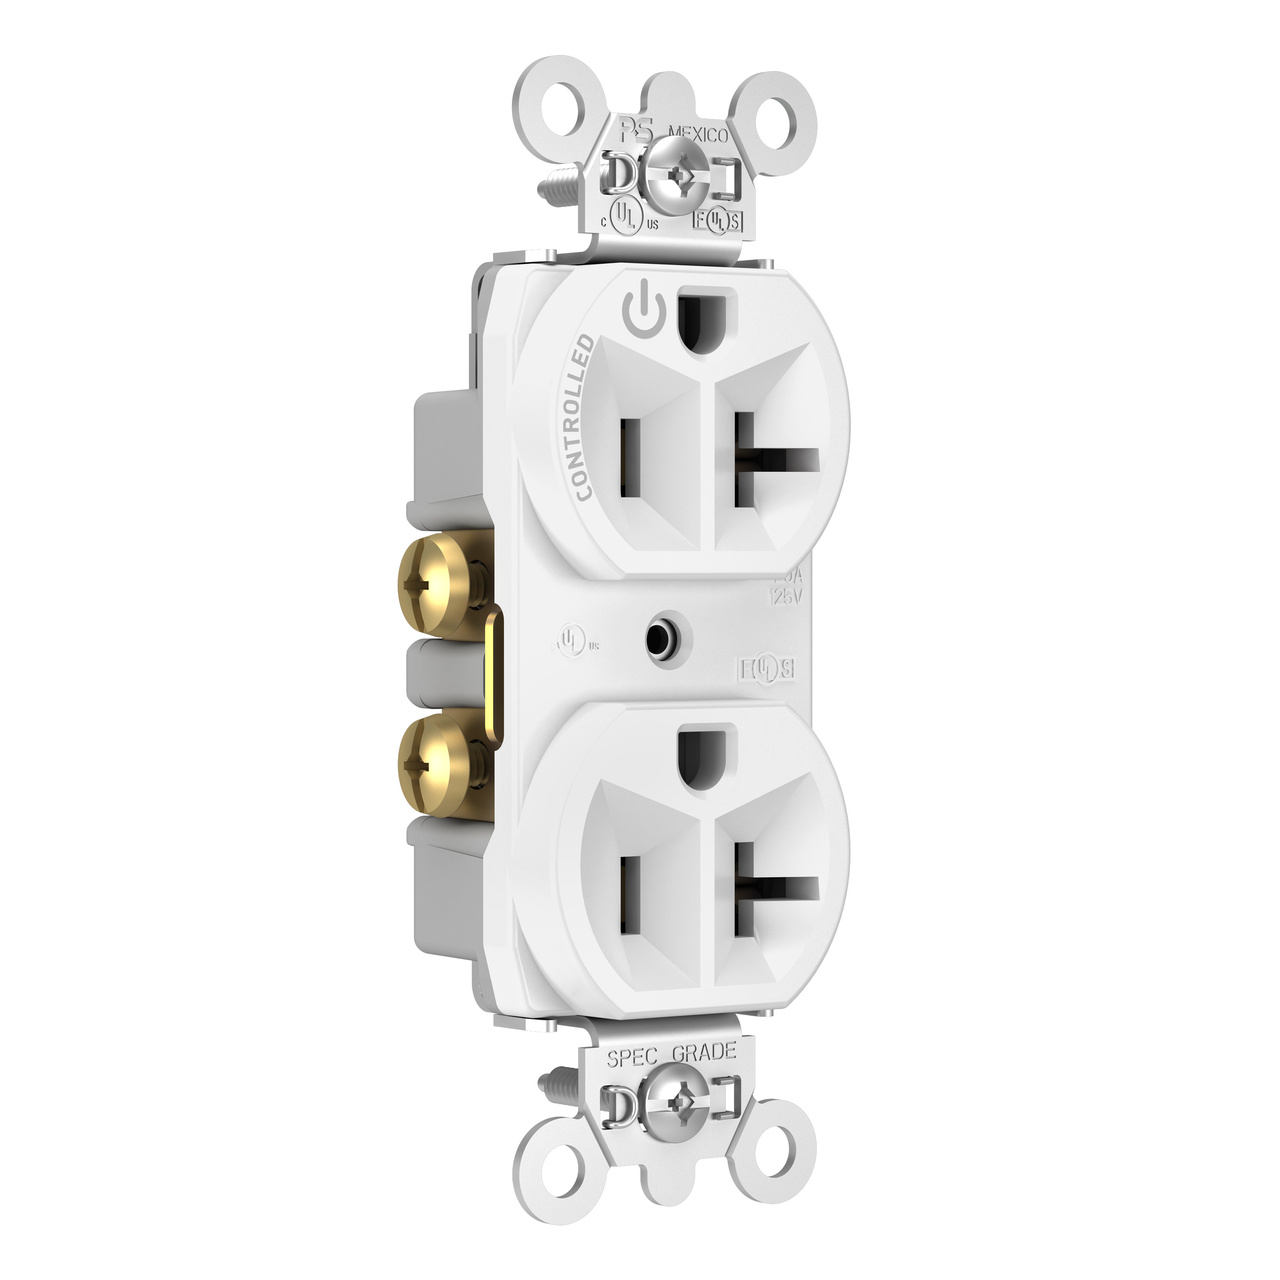 20A, 125V Half-Controlled Plug Load Controllable Receptacle, White